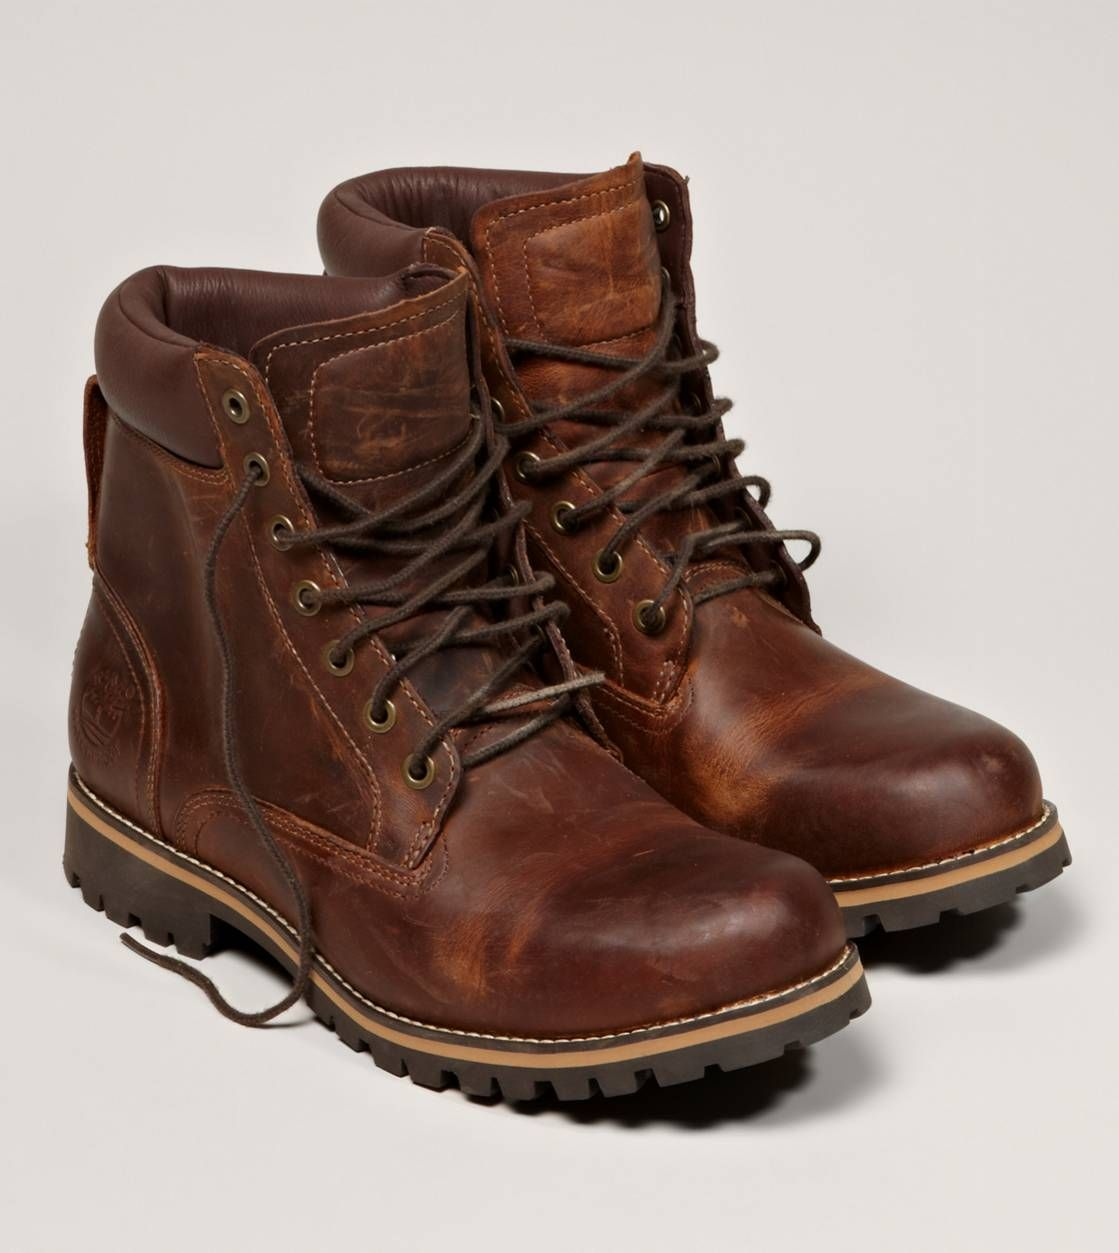 American Eagle Outfitters Men's & Women's Clothing, Shoes & Accessories